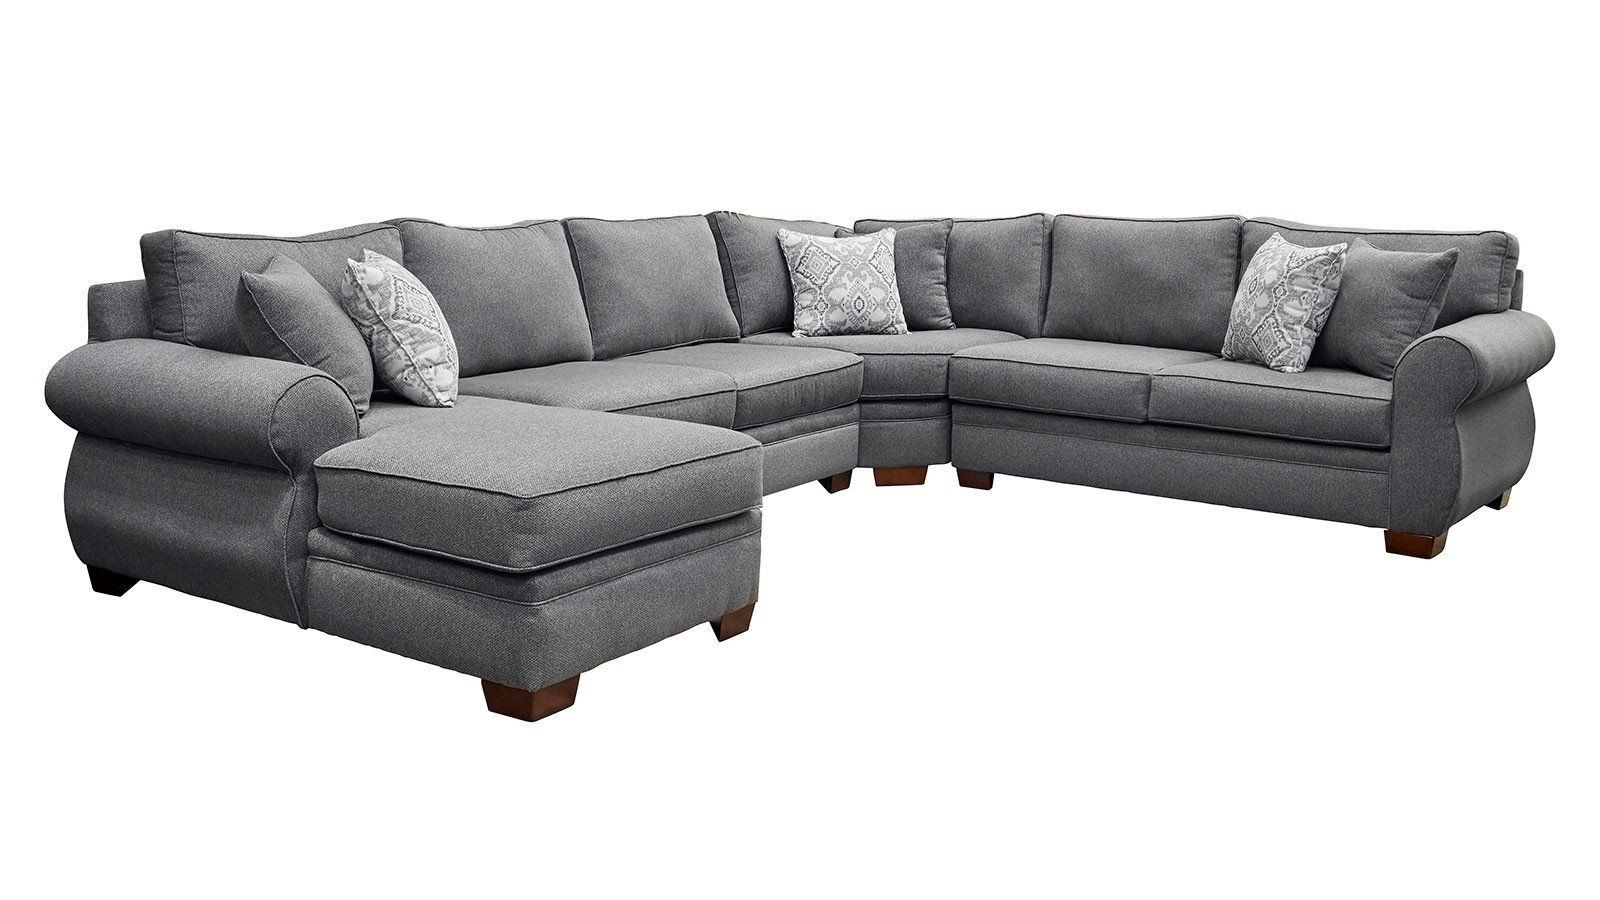 Living Room Sectionals | Gallery Furniture With Regard To El Paso Texas Sectional Sofas (View 7 of 10)